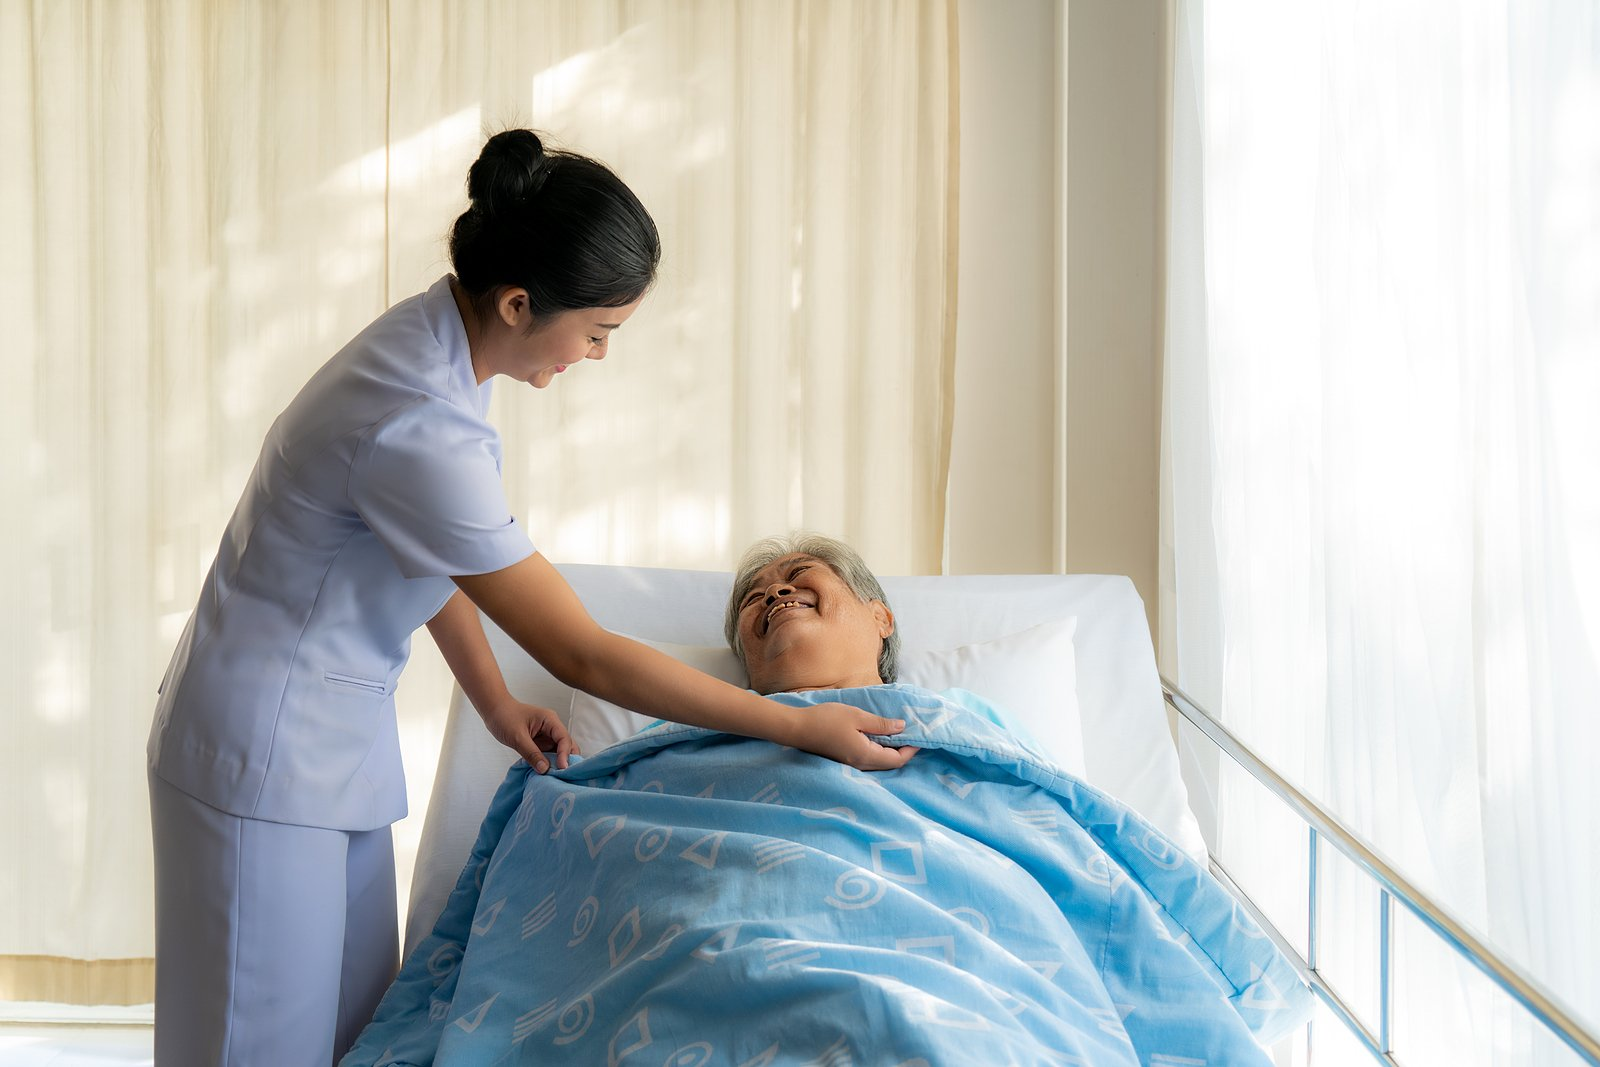 elderly woman in a hospital bed at home with a nurse